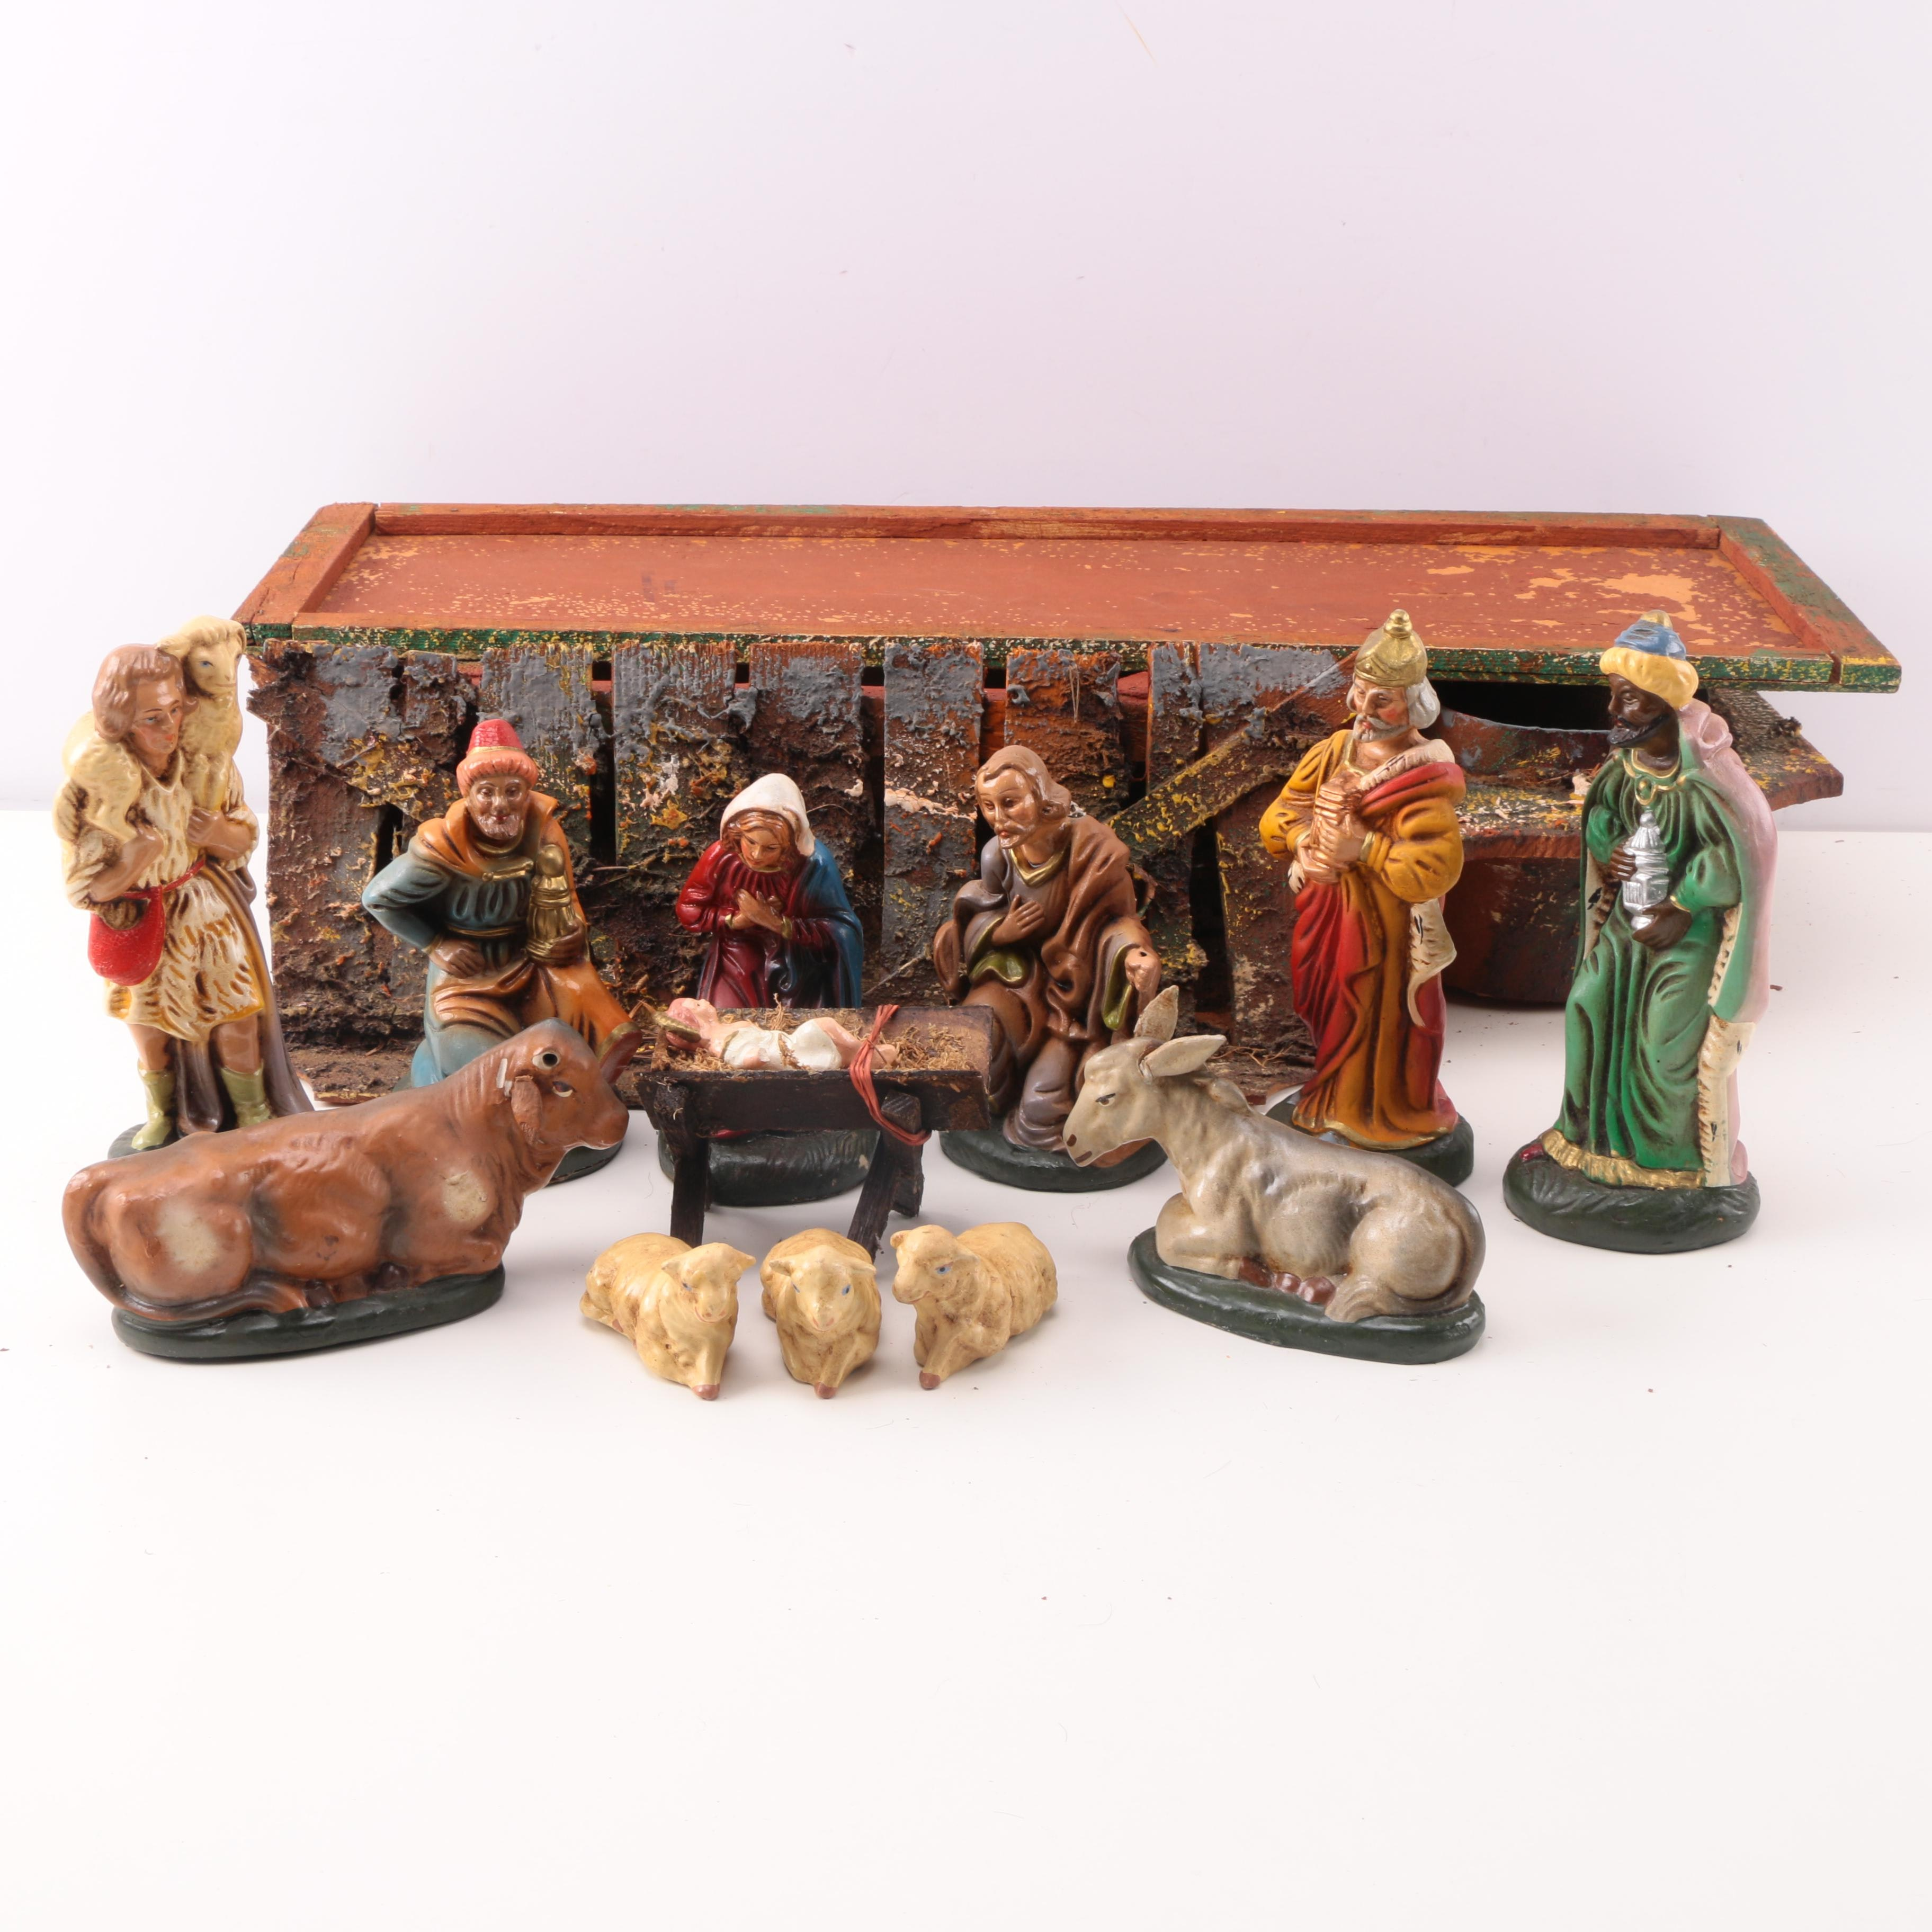 Nativity Figurines and Set with Storage from Western Germany